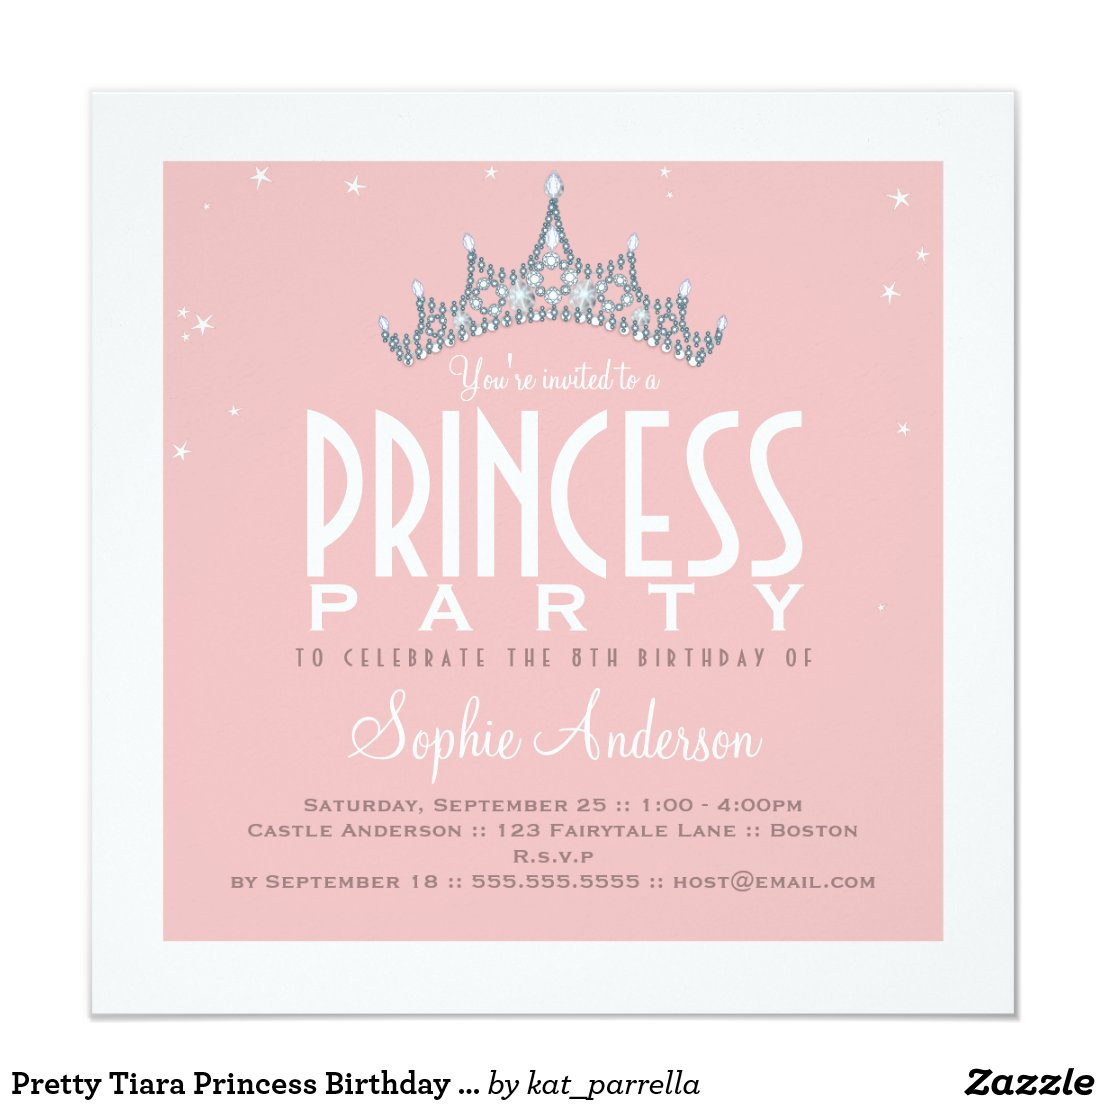 Pretty Tiara Princess Birthday Party Invitation